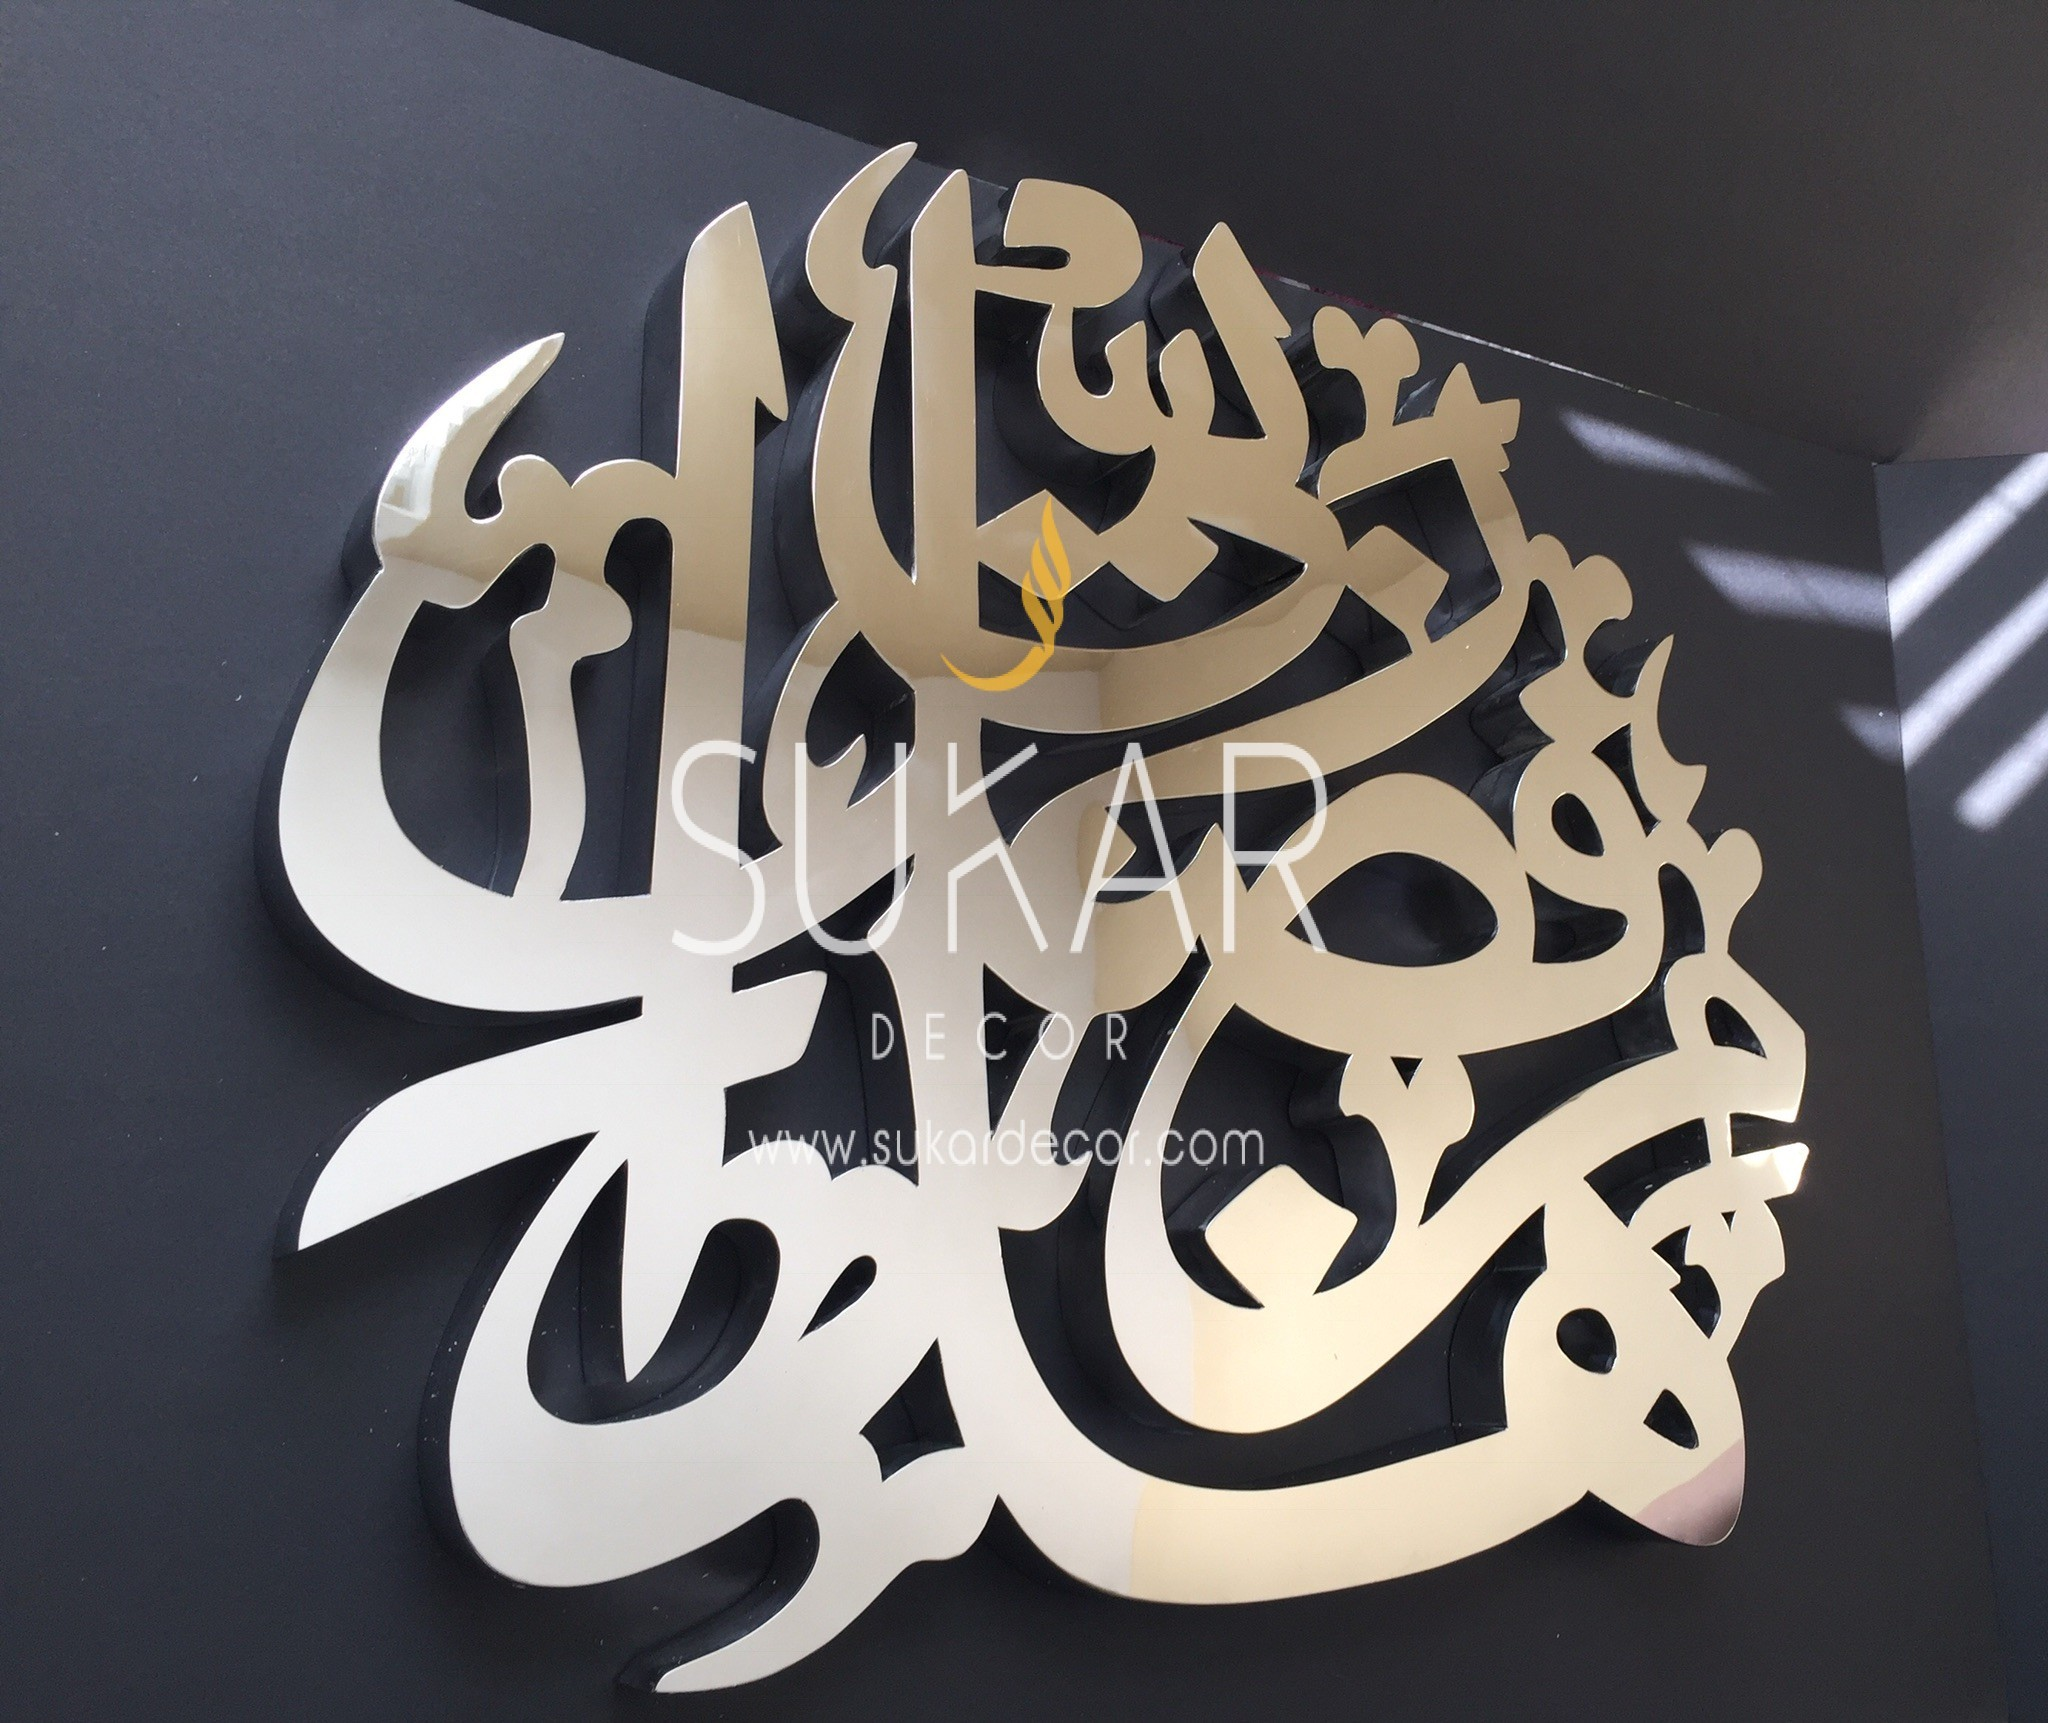 Hatha Min Fadl Rabi  Modern Islamic Wall Art Calligraphy. Islamic Art  Stands Out Wherever